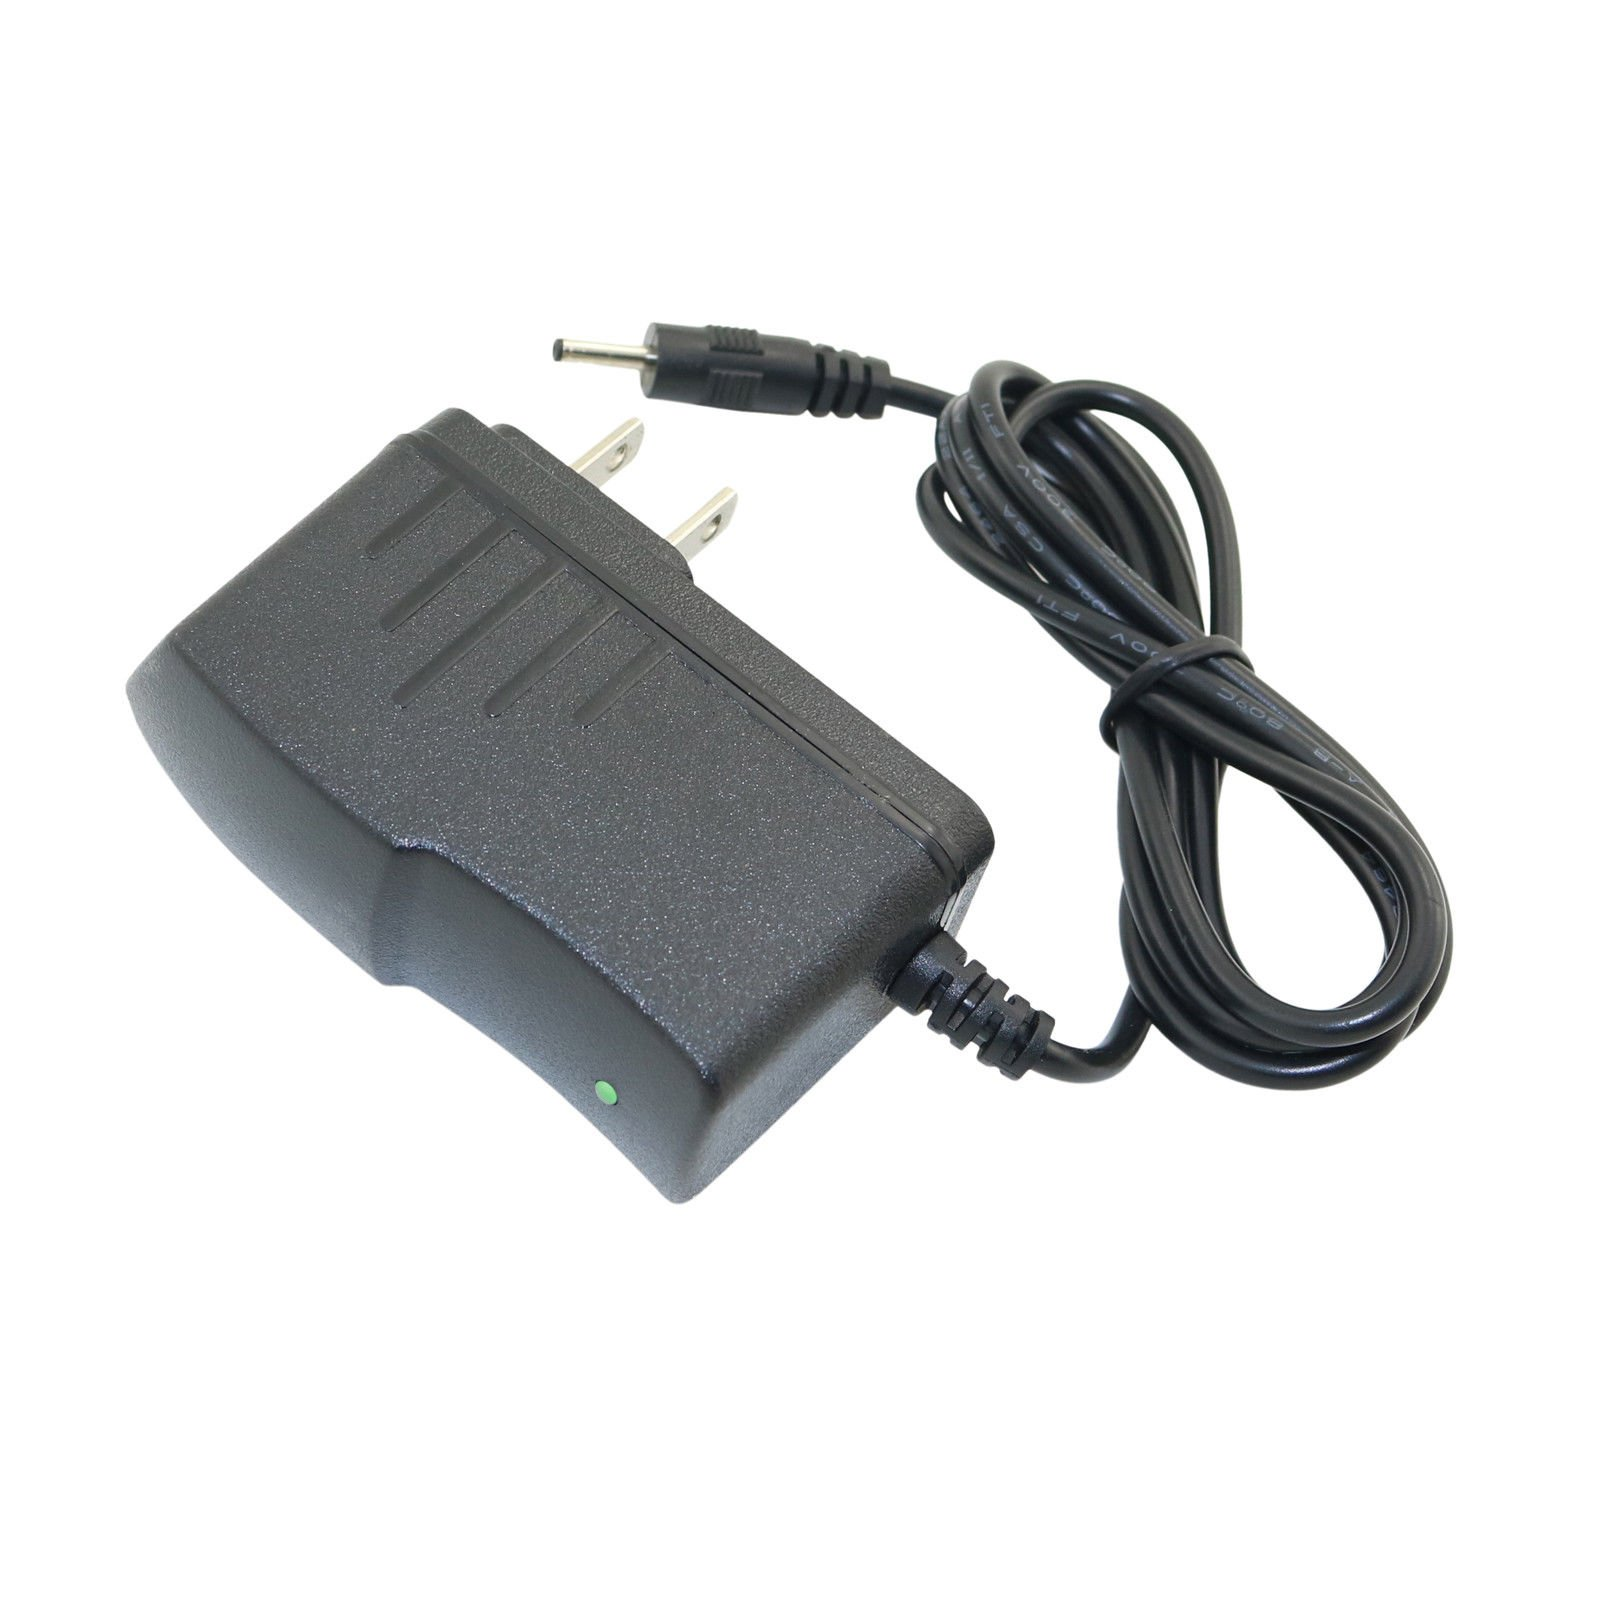 AC Adapter DC Wall Power Supply Charger for Nextbook Flexx 11A NX16W11264 Tablet